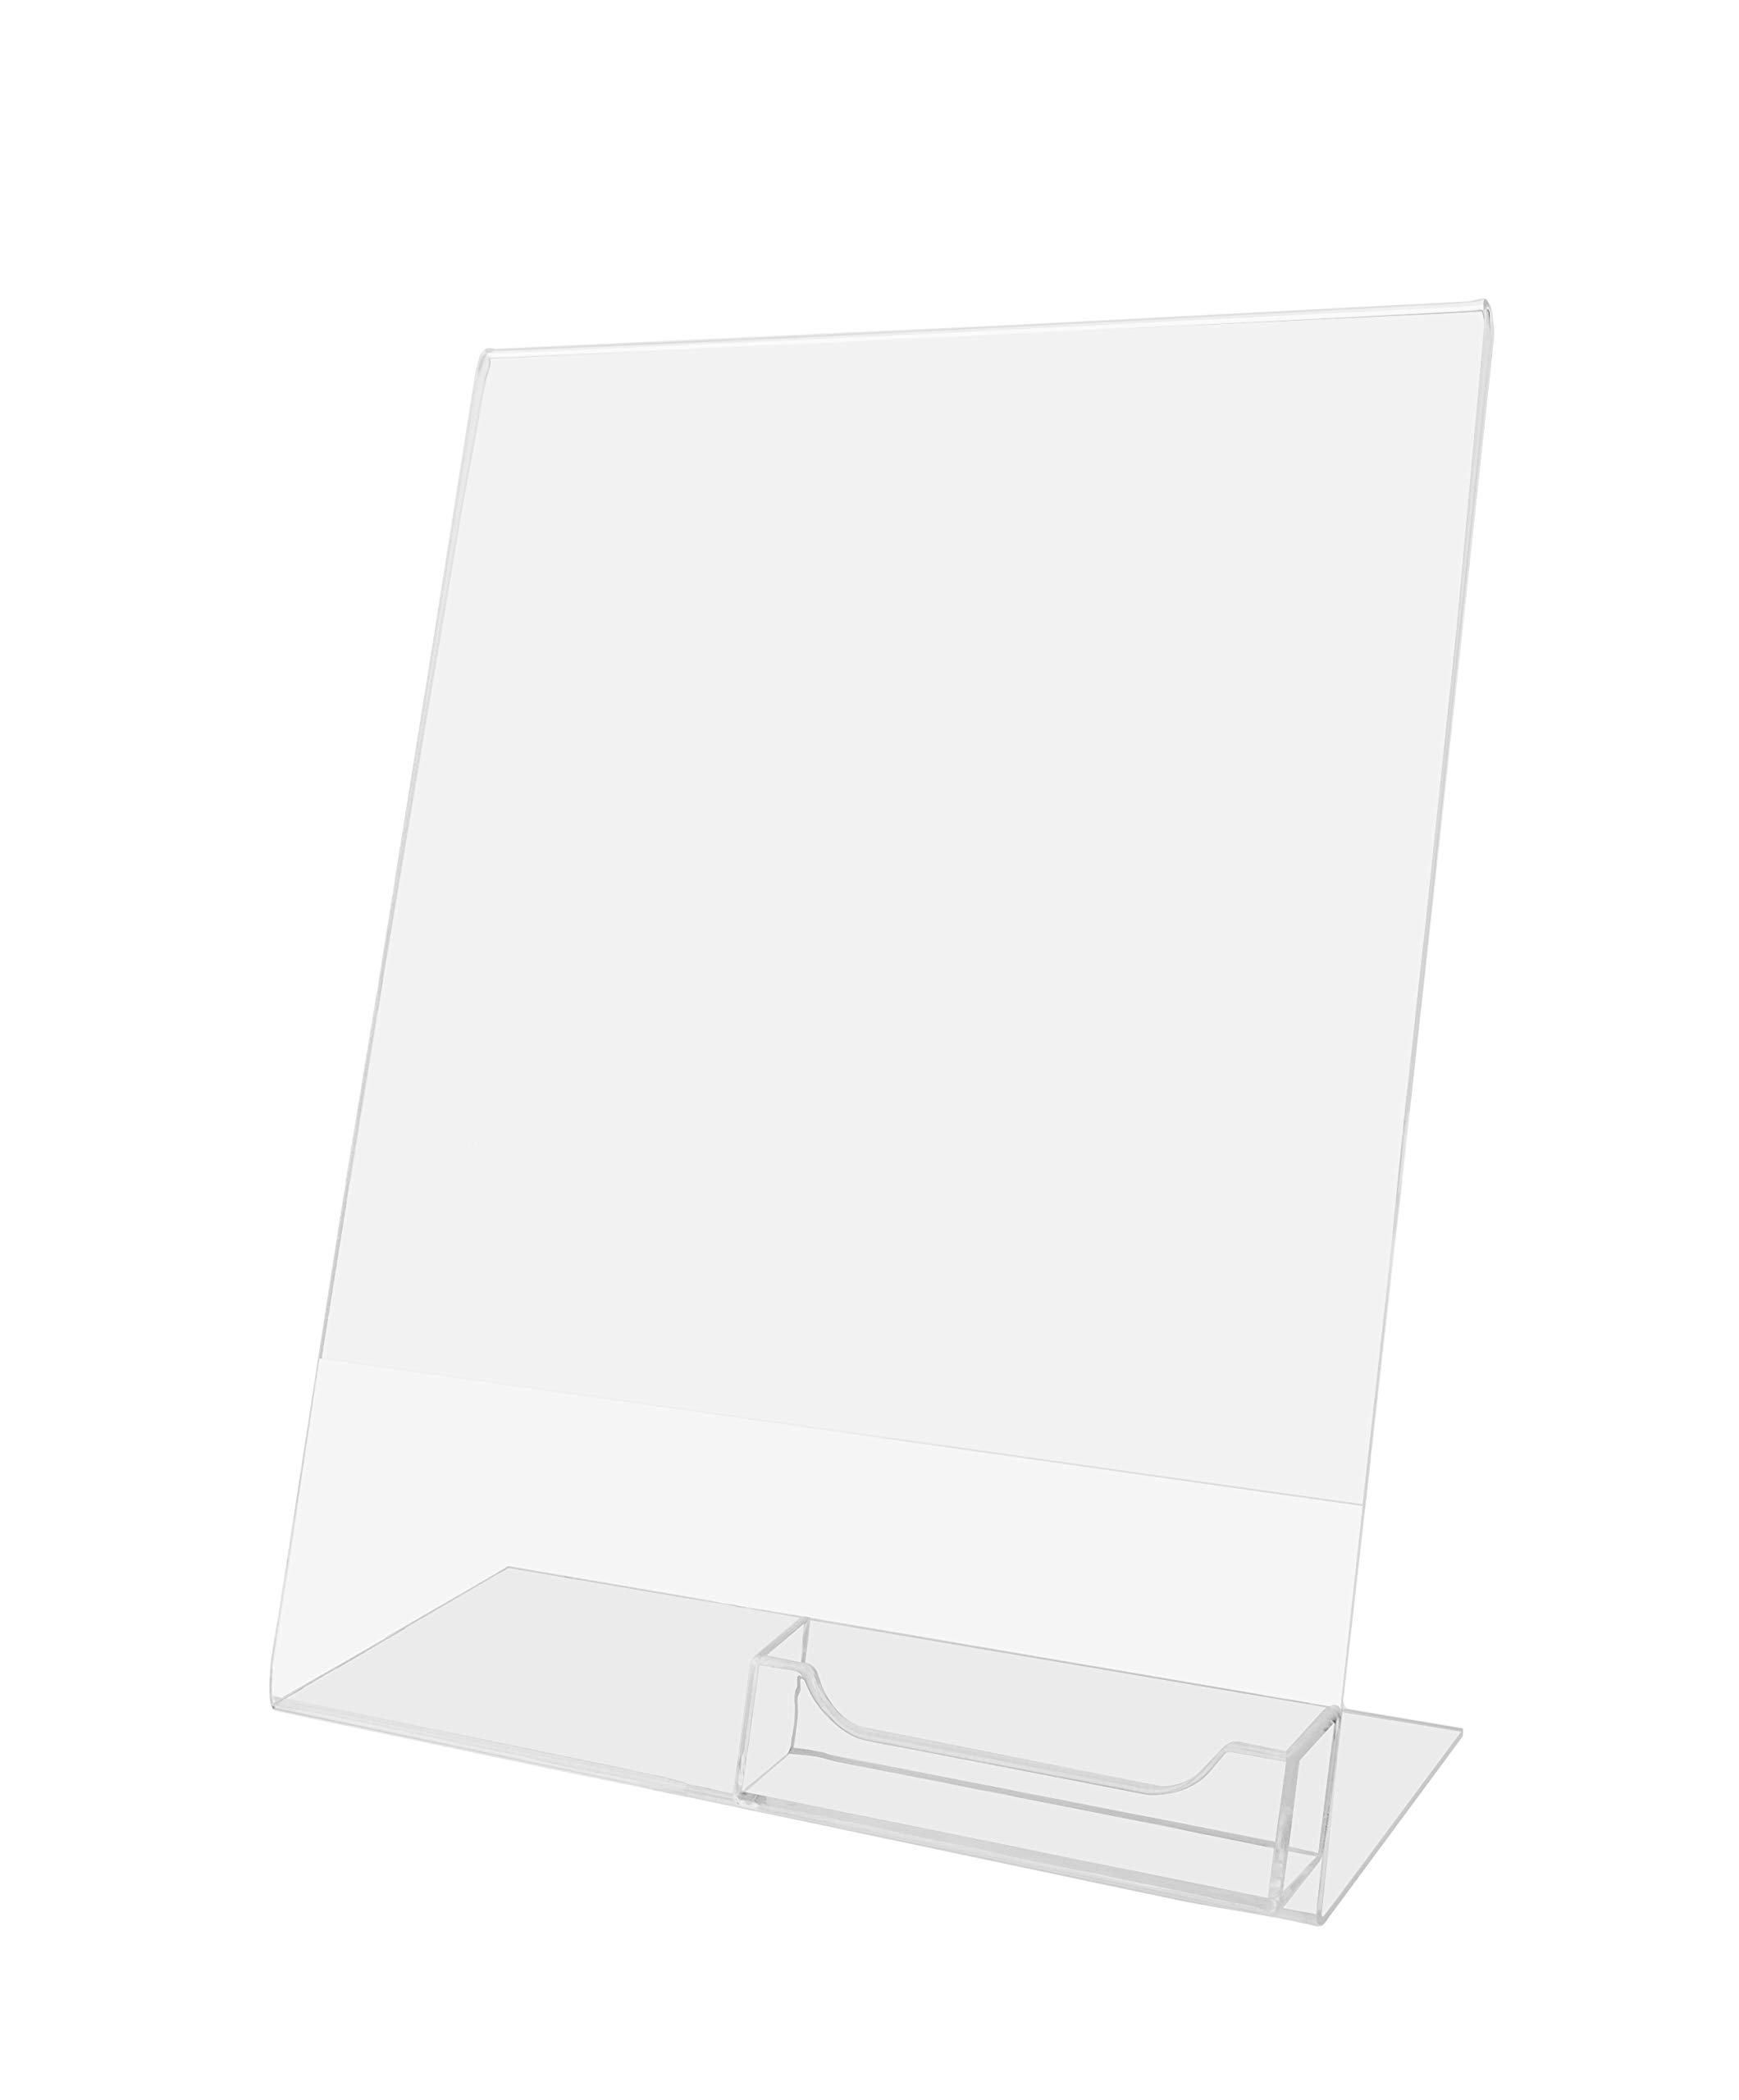 Set of 12, 8.5x11 L-Shaped Sign Holders with Business Card Pocket, for Tabletop Use, Slant Back - Clear Acrylic